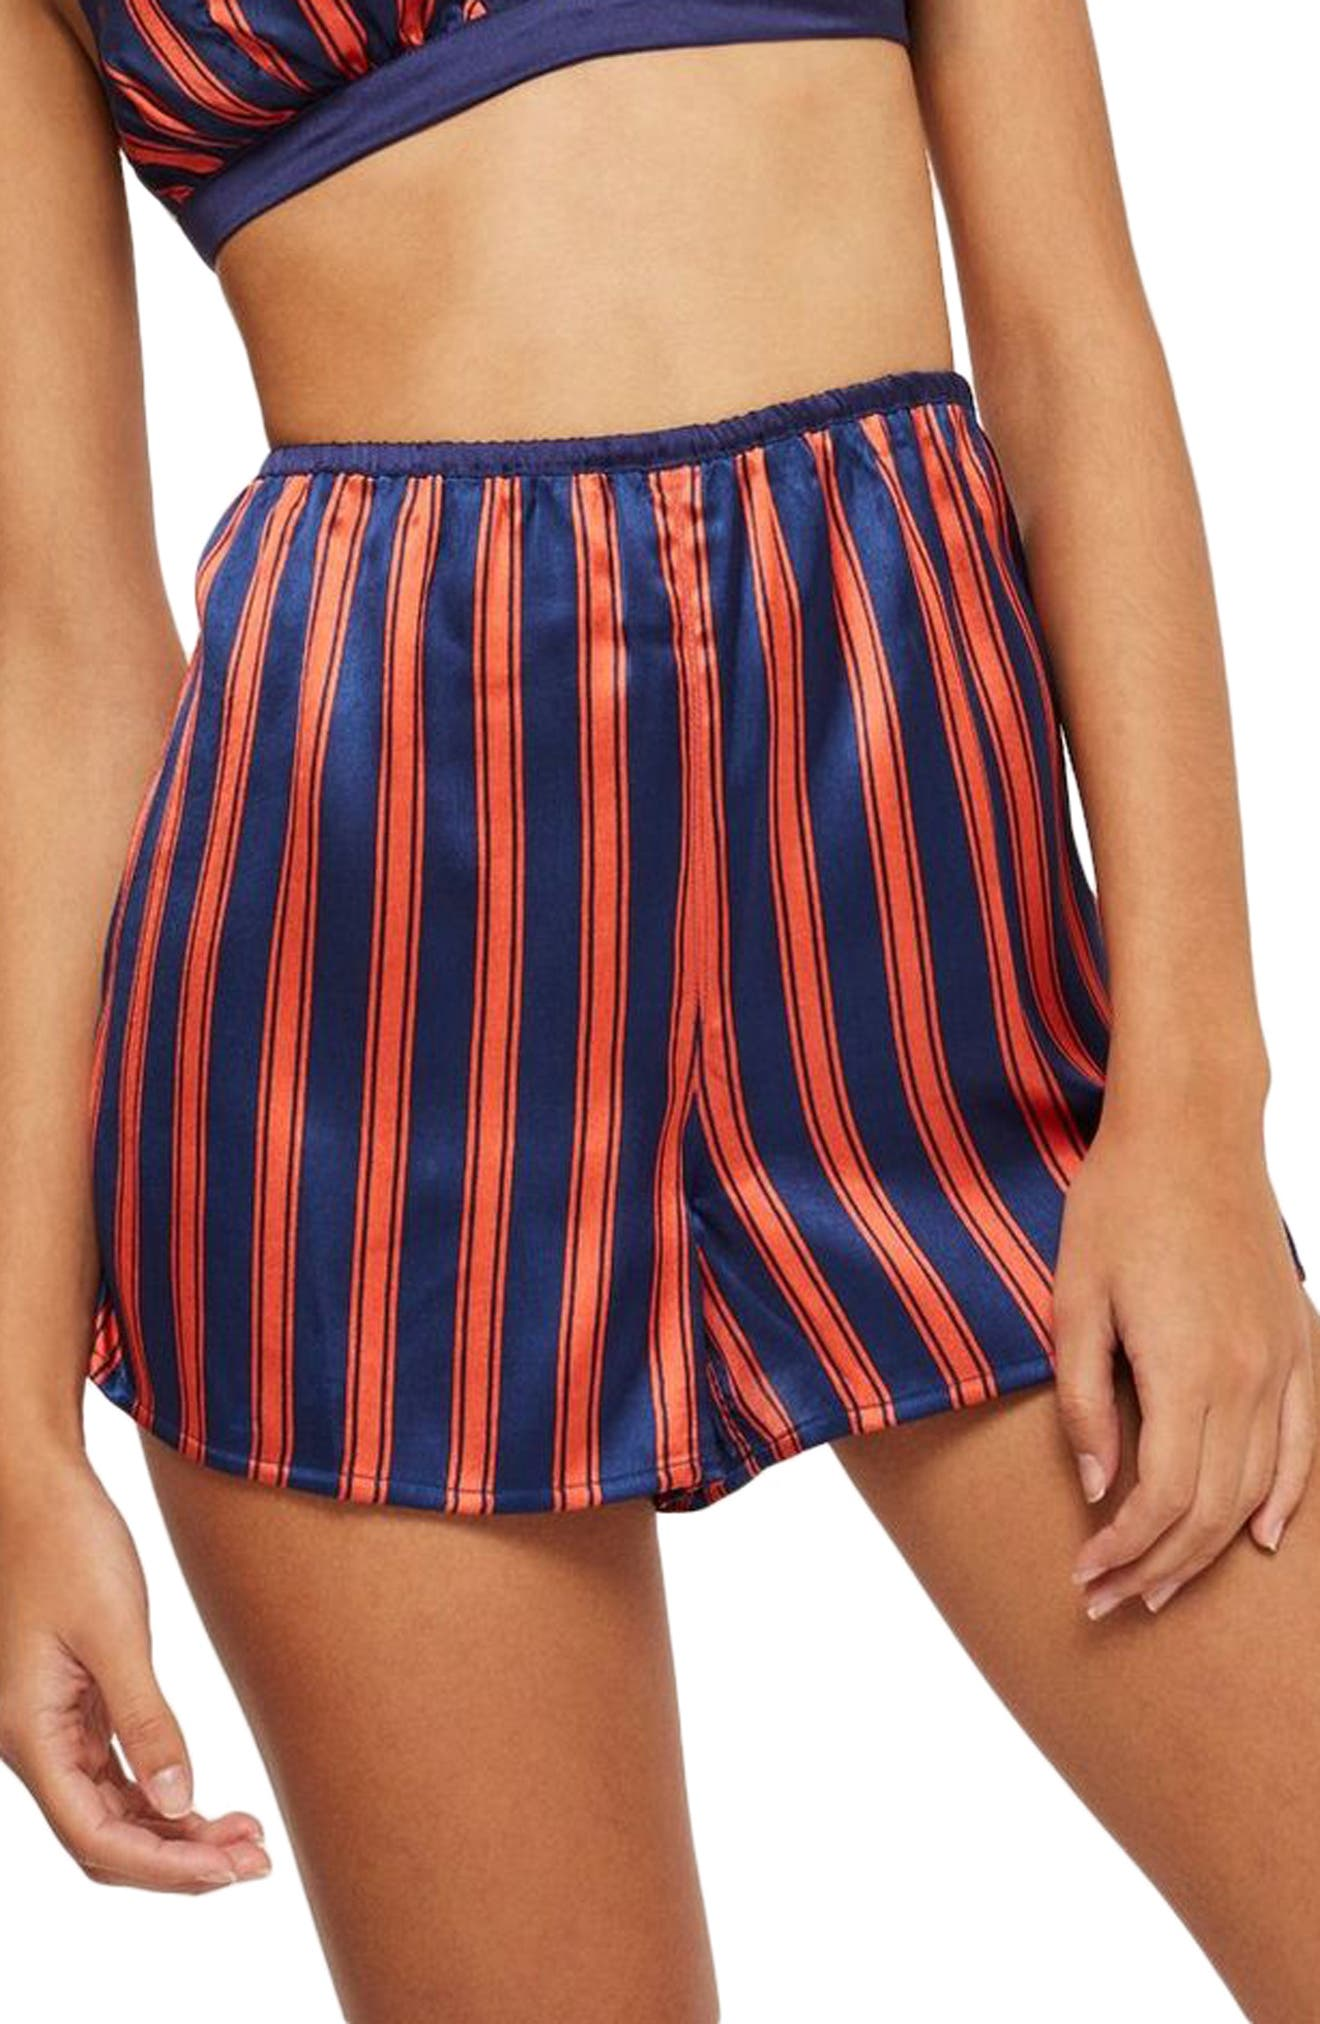 Striped Satin Pajama Shorts,                             Main thumbnail 1, color,                             NAVY MULTI